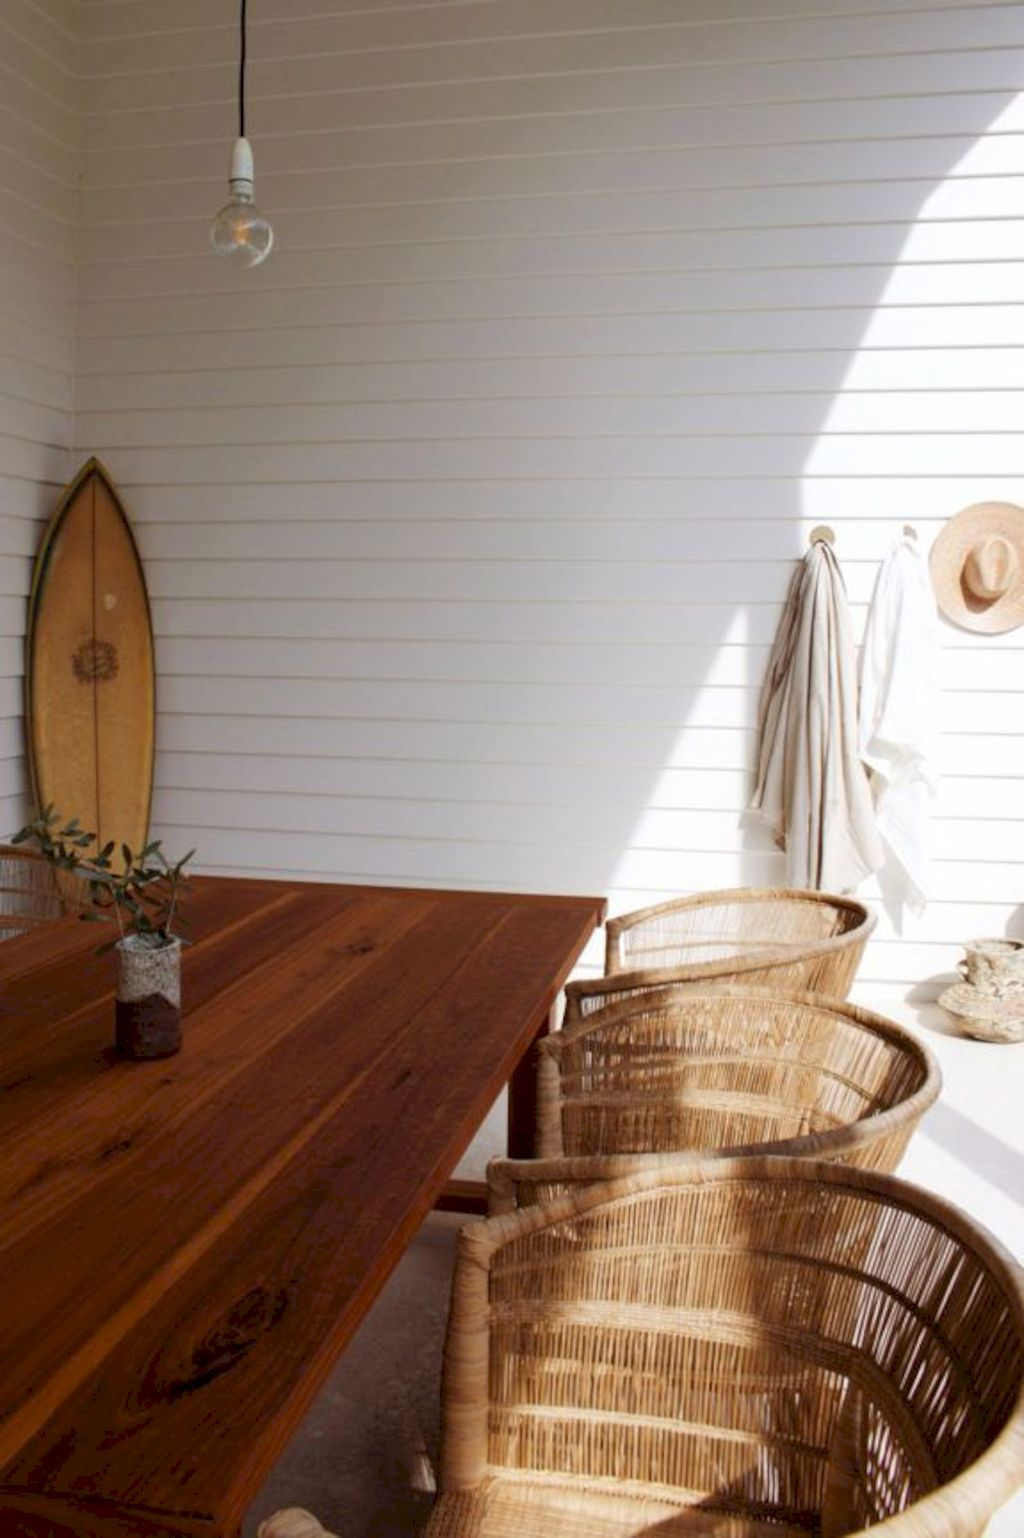 Beach home dining room style giving a fresh vibe among inviting recreational interior update Image 9